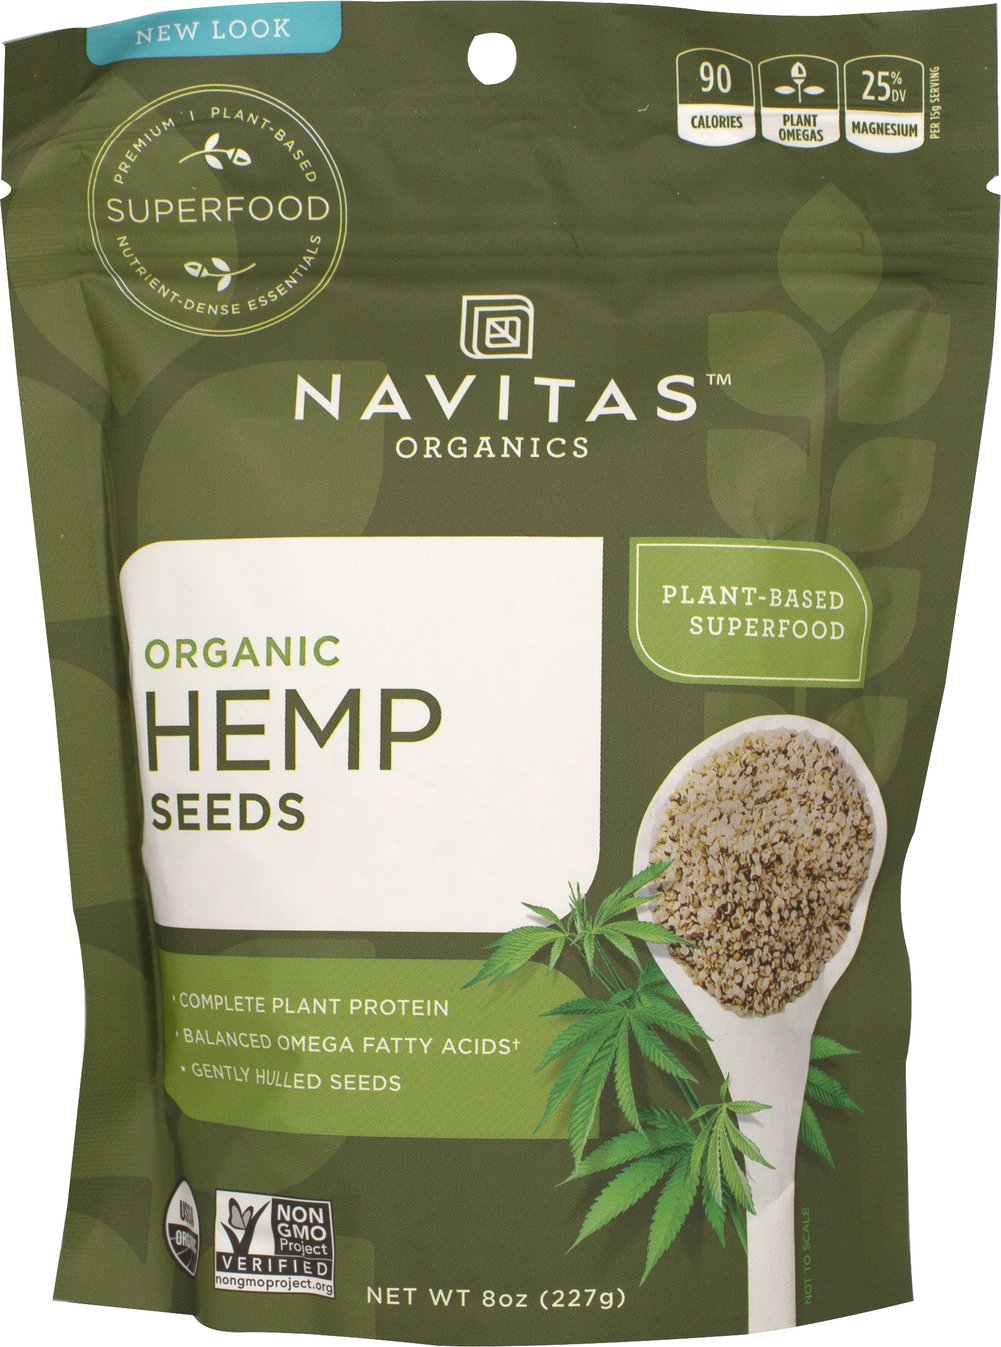 Raw Shelled Hemp Seeds <B>From The Manufacturers Label:</B> <P>Hemp is one of the earliest known cultivated plants with a history dating back thousands of years.  Navitas Naturals 100% pure shelled hemp seeds are certified organic, kosher, vegan, gluten-free and raw.  Use this Kashmir Superfood in smoothies, cereals and salads.</P>  8 oz Seeds  $19.99